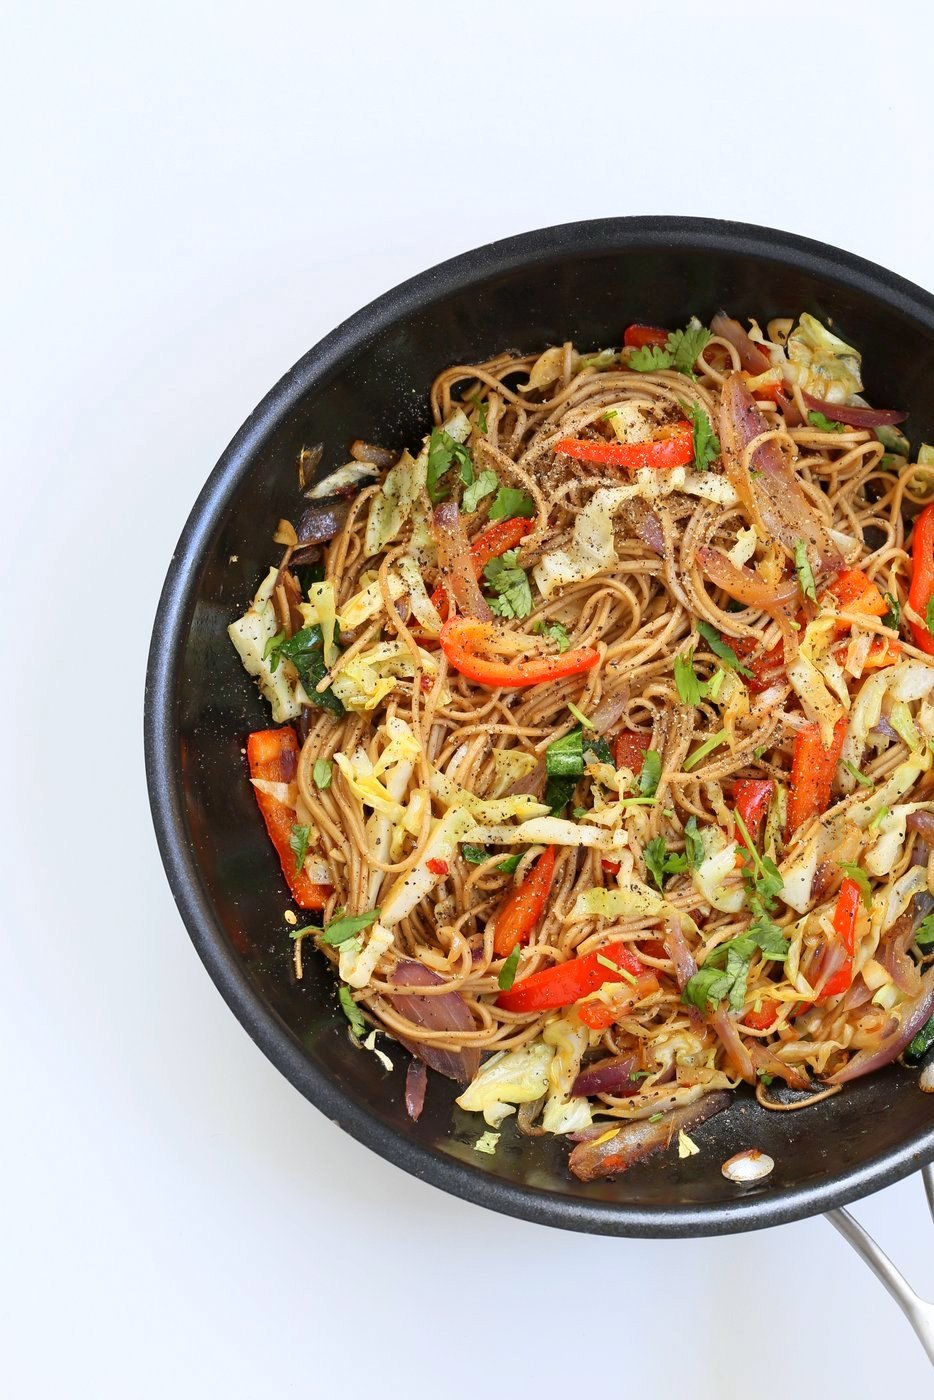 Easy 1 Pot Vegetable Hakka Noodles. Indo Chinese Hakka Noodles with peppers, onions, cabbage, carrots and a simple sauce. Vegan Nutfree Recipe. Can be gluten-free. | VeganRicha.com